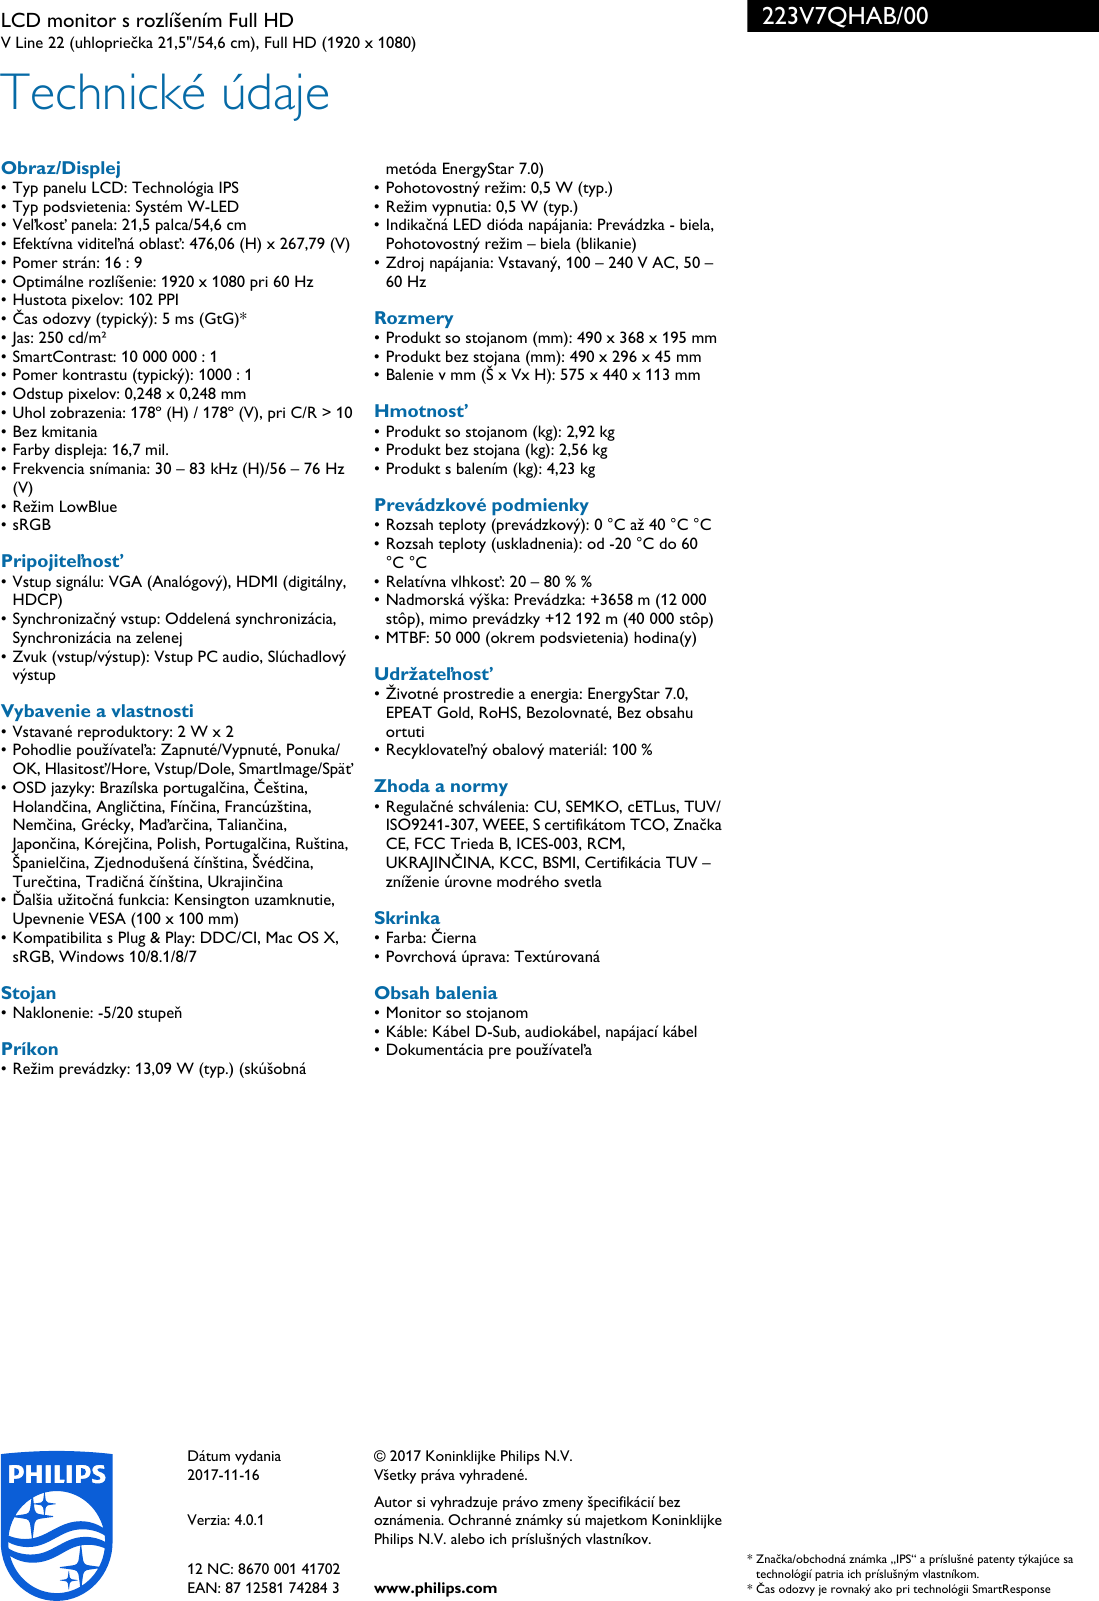 223V7QHAB00 User Guide Page 3